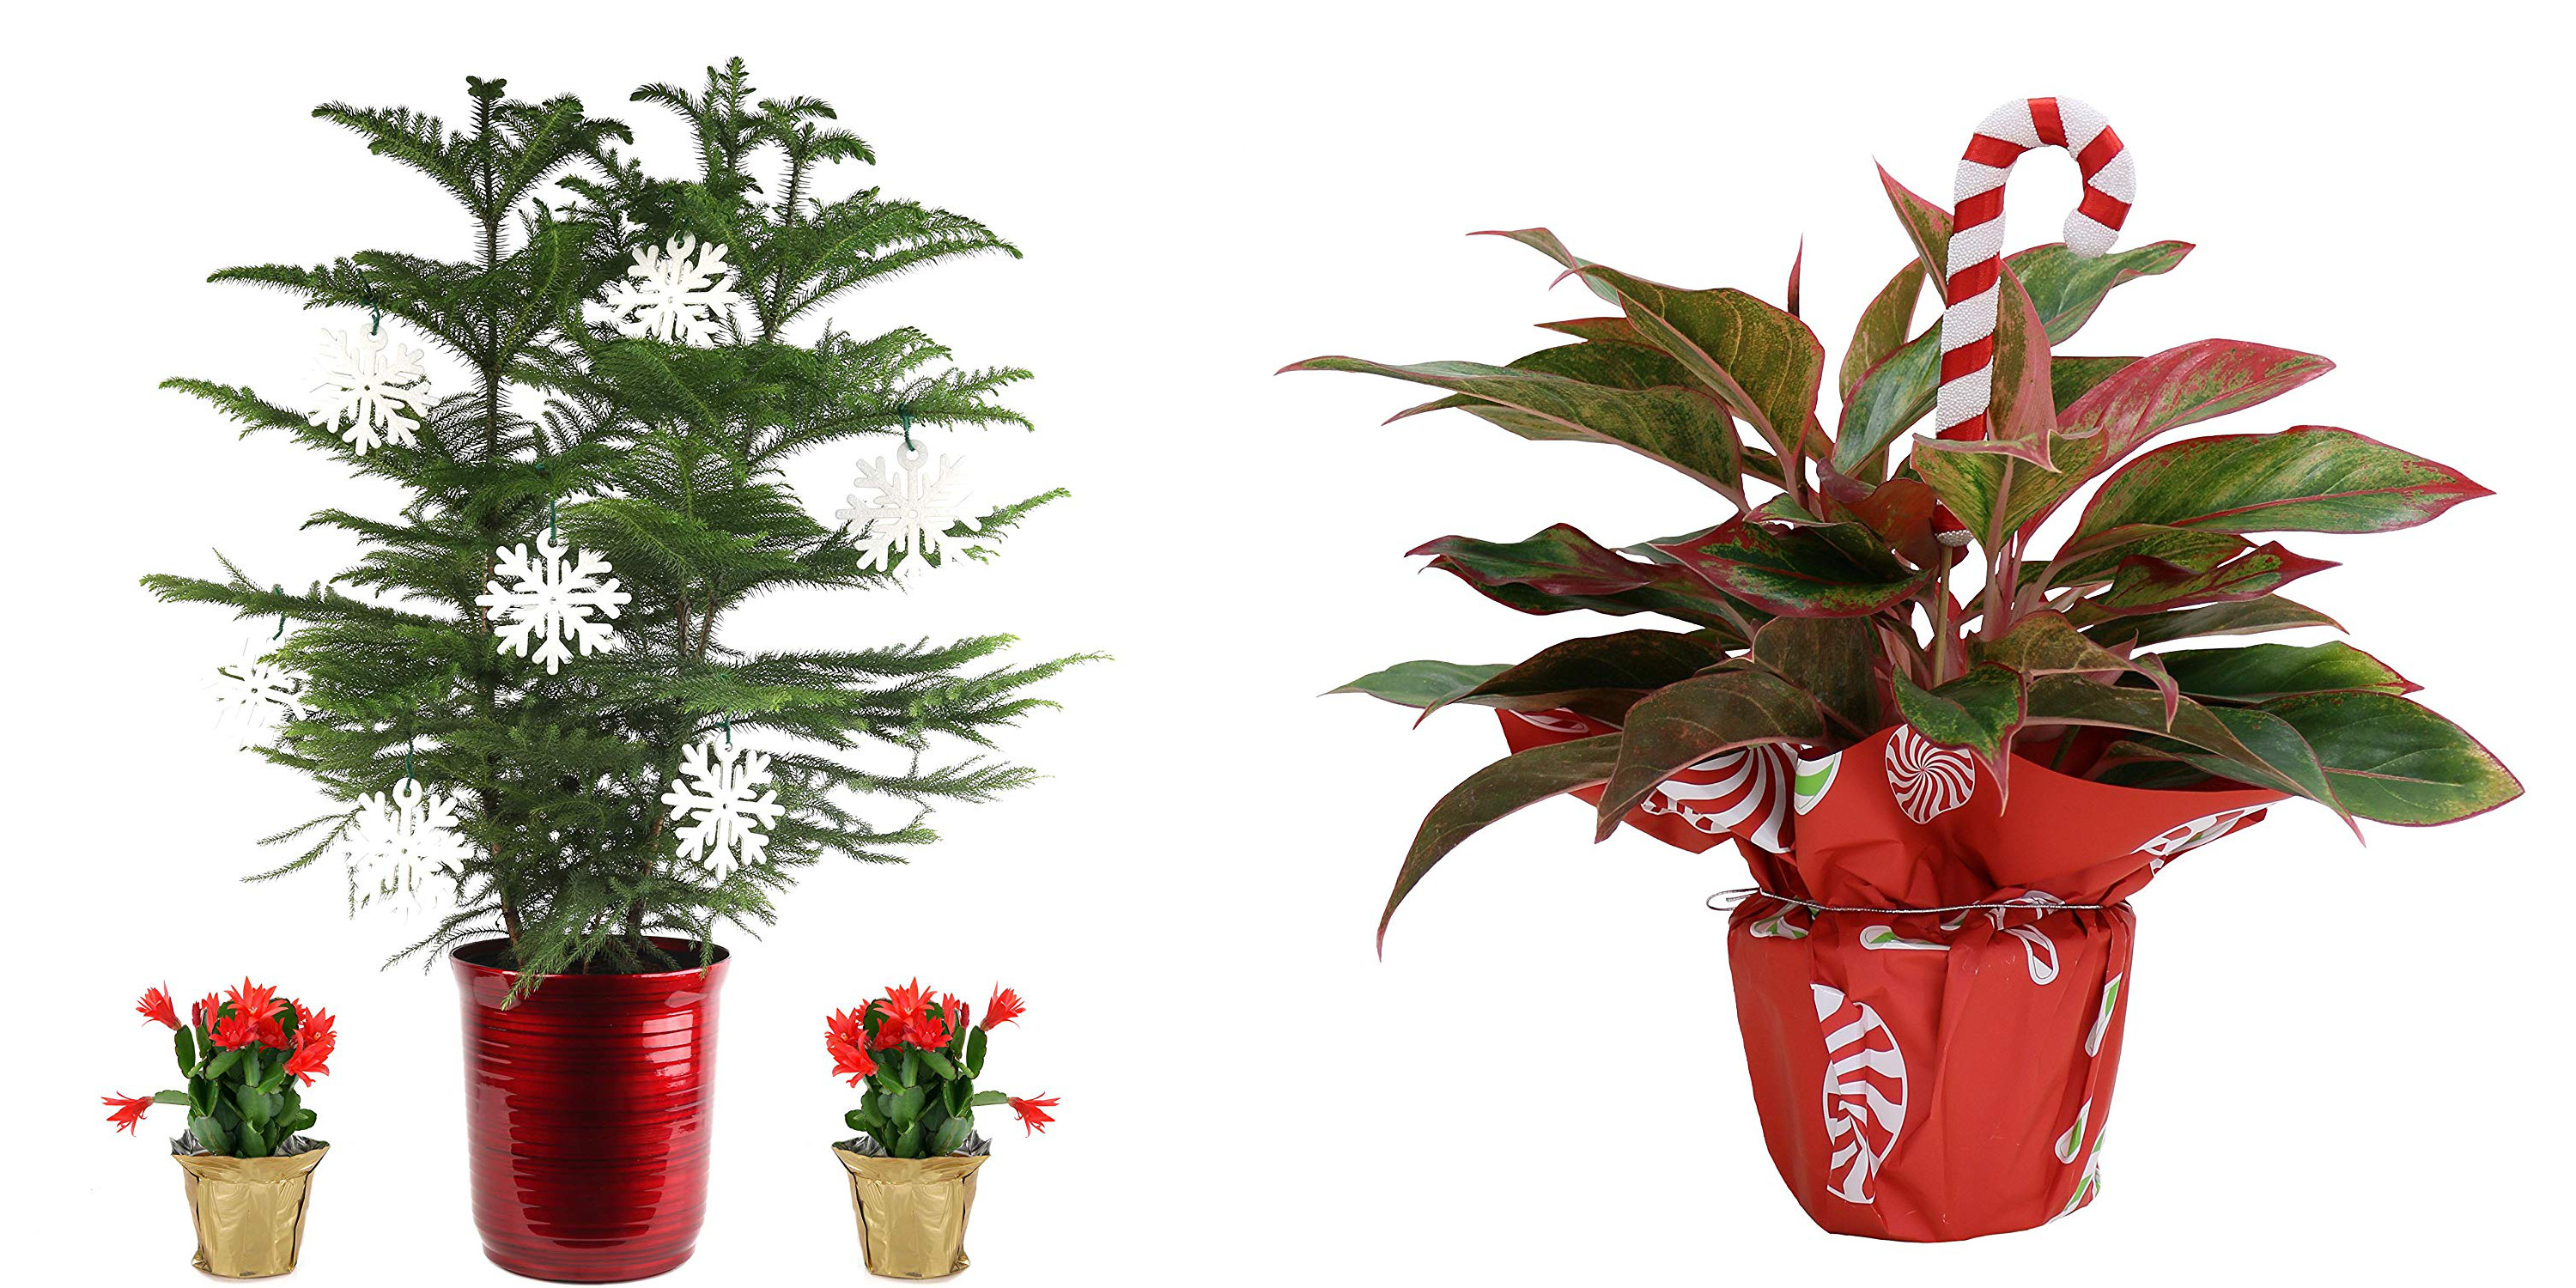 Indoor plants from $20 at Amazon today: mini Christmas tree, cactus + more from $3